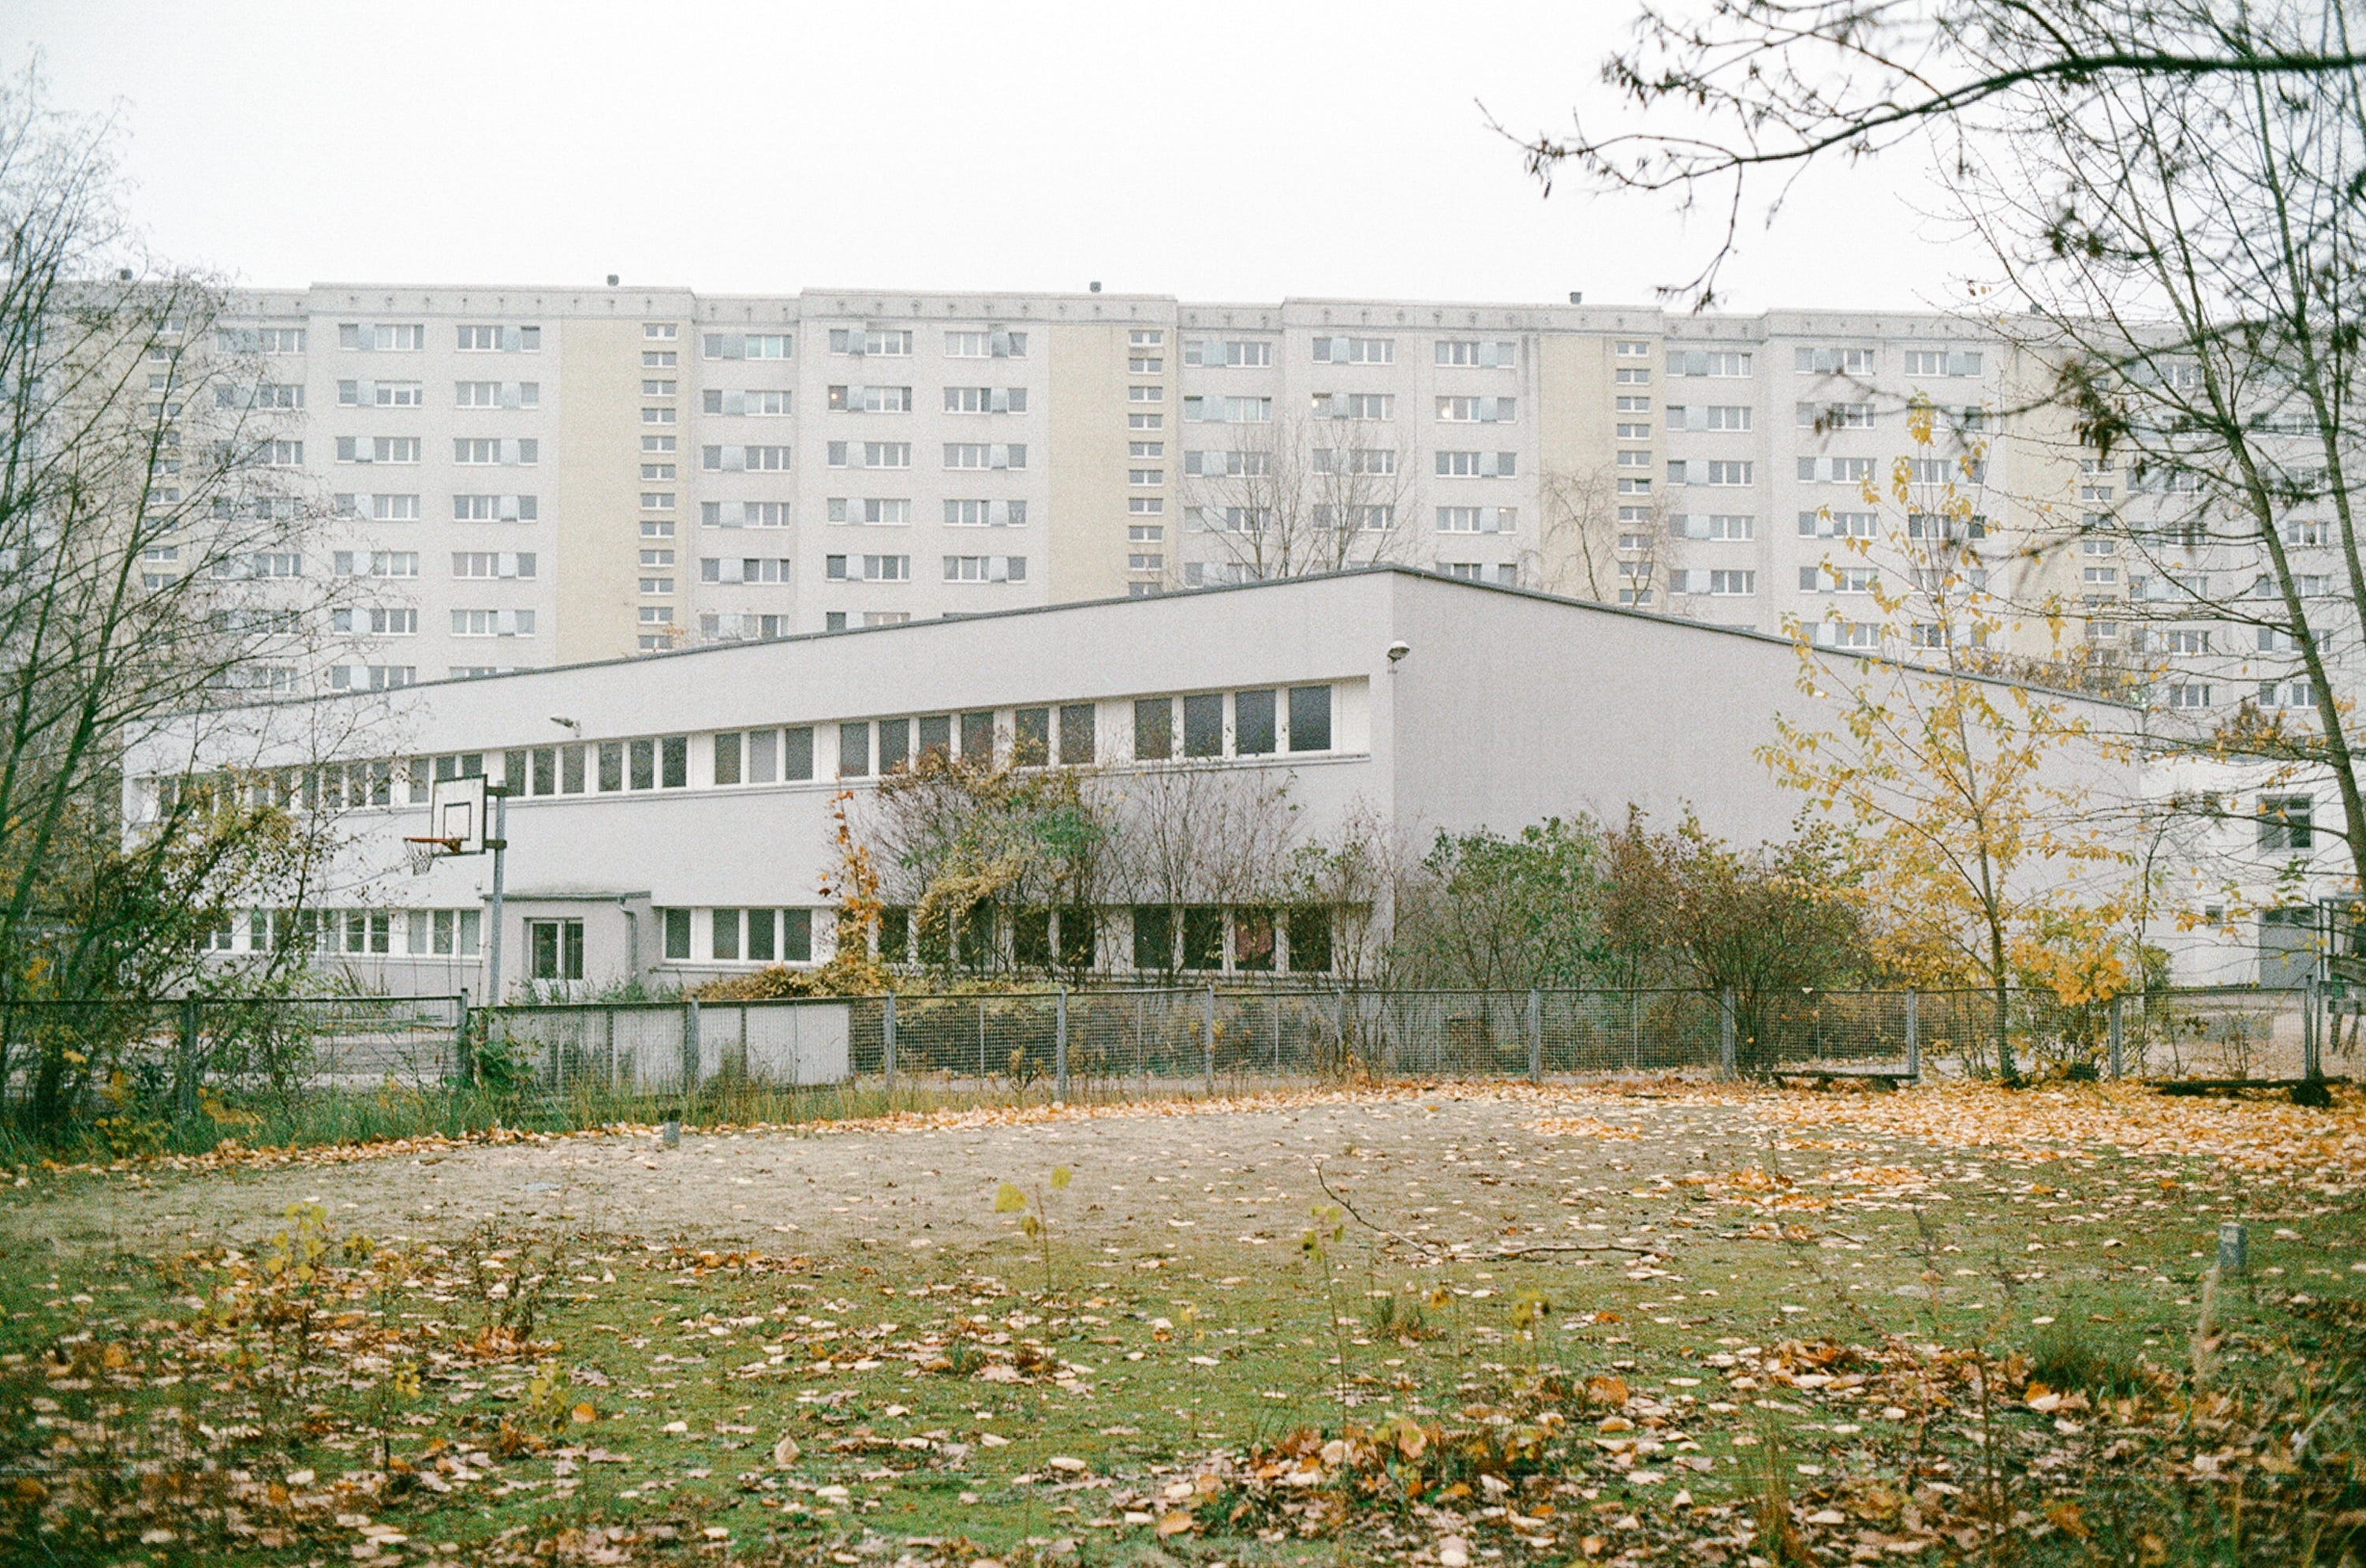 Residents of these complexes developed a strong sense of place